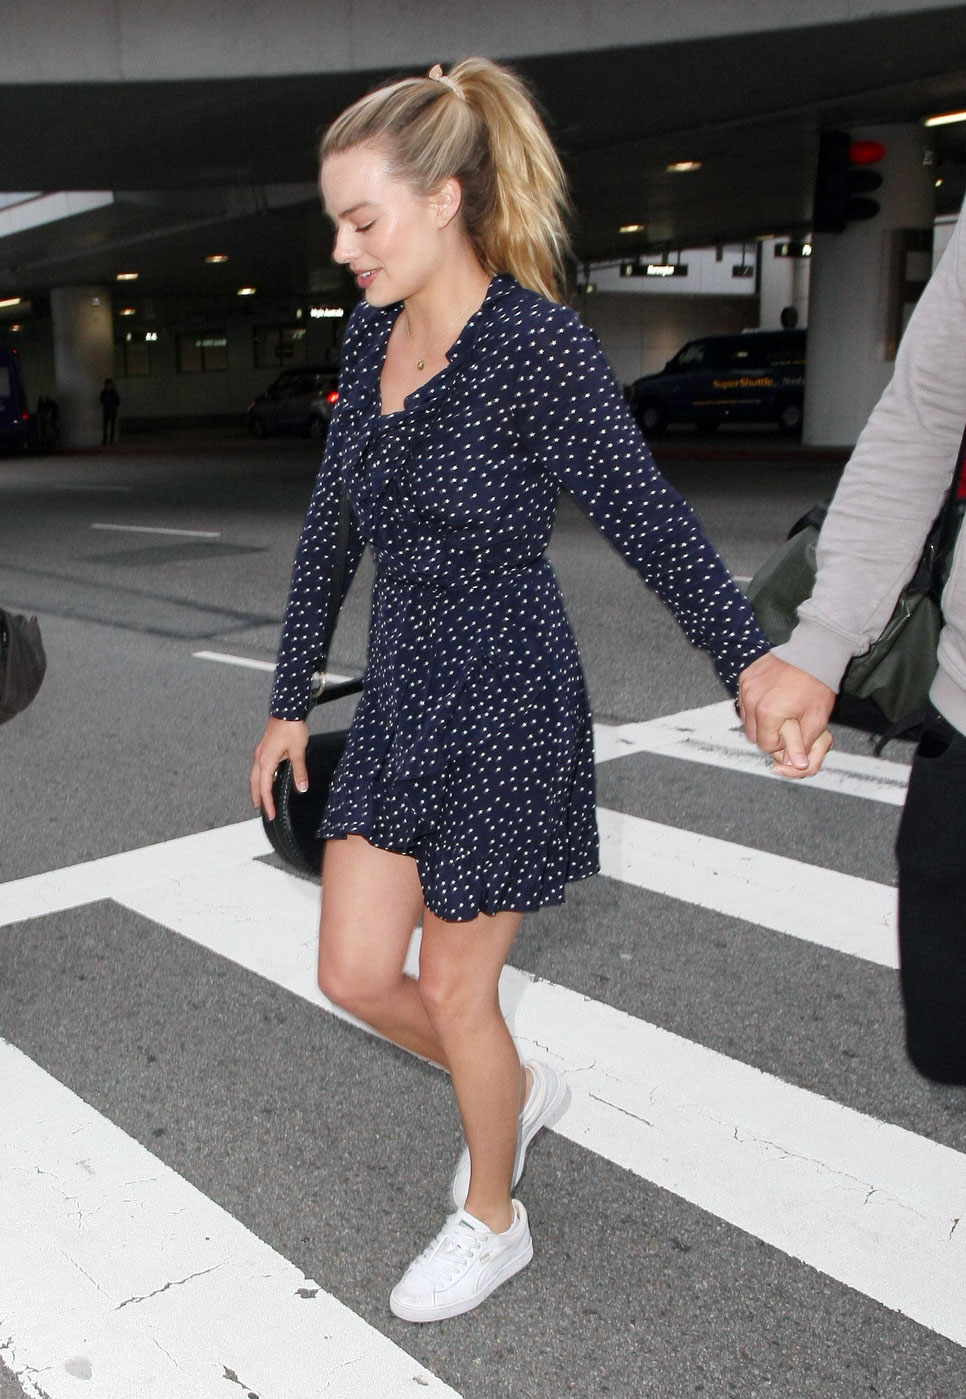 Margot Robbie looks chic in a retro-minded polka dot dress and modern white sneakers.